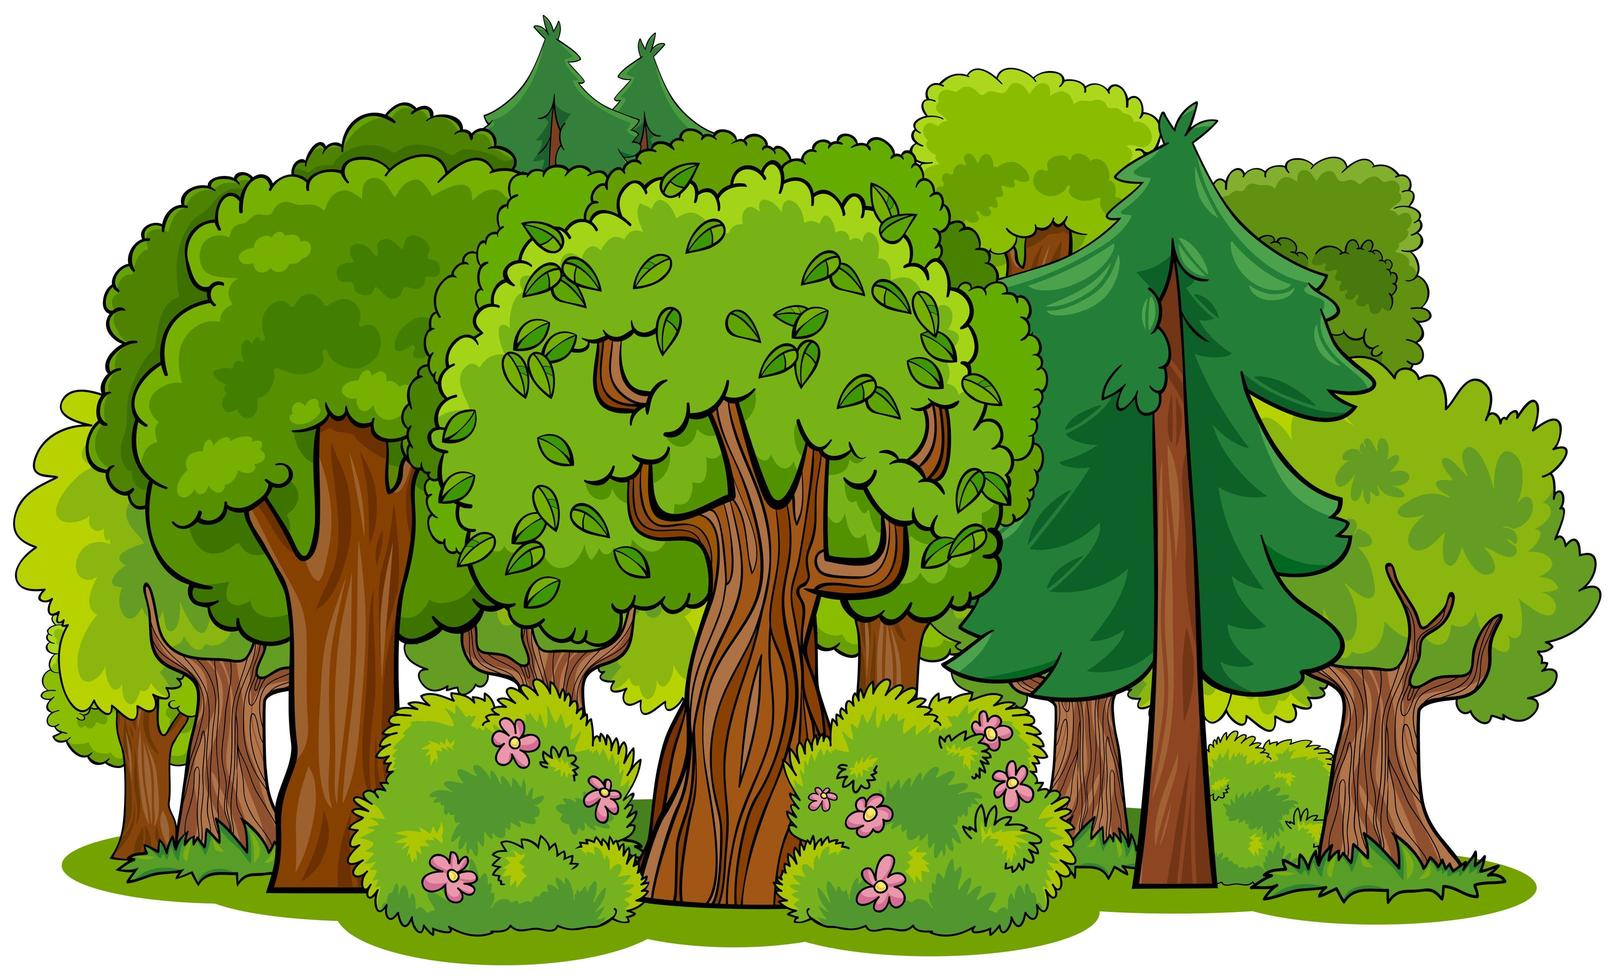 Mixed Forest With Trees Cartoon Download Free Vectors Clipart Graphics Vector Art Spring, summer season meadow landscape. mixed forest with trees cartoon